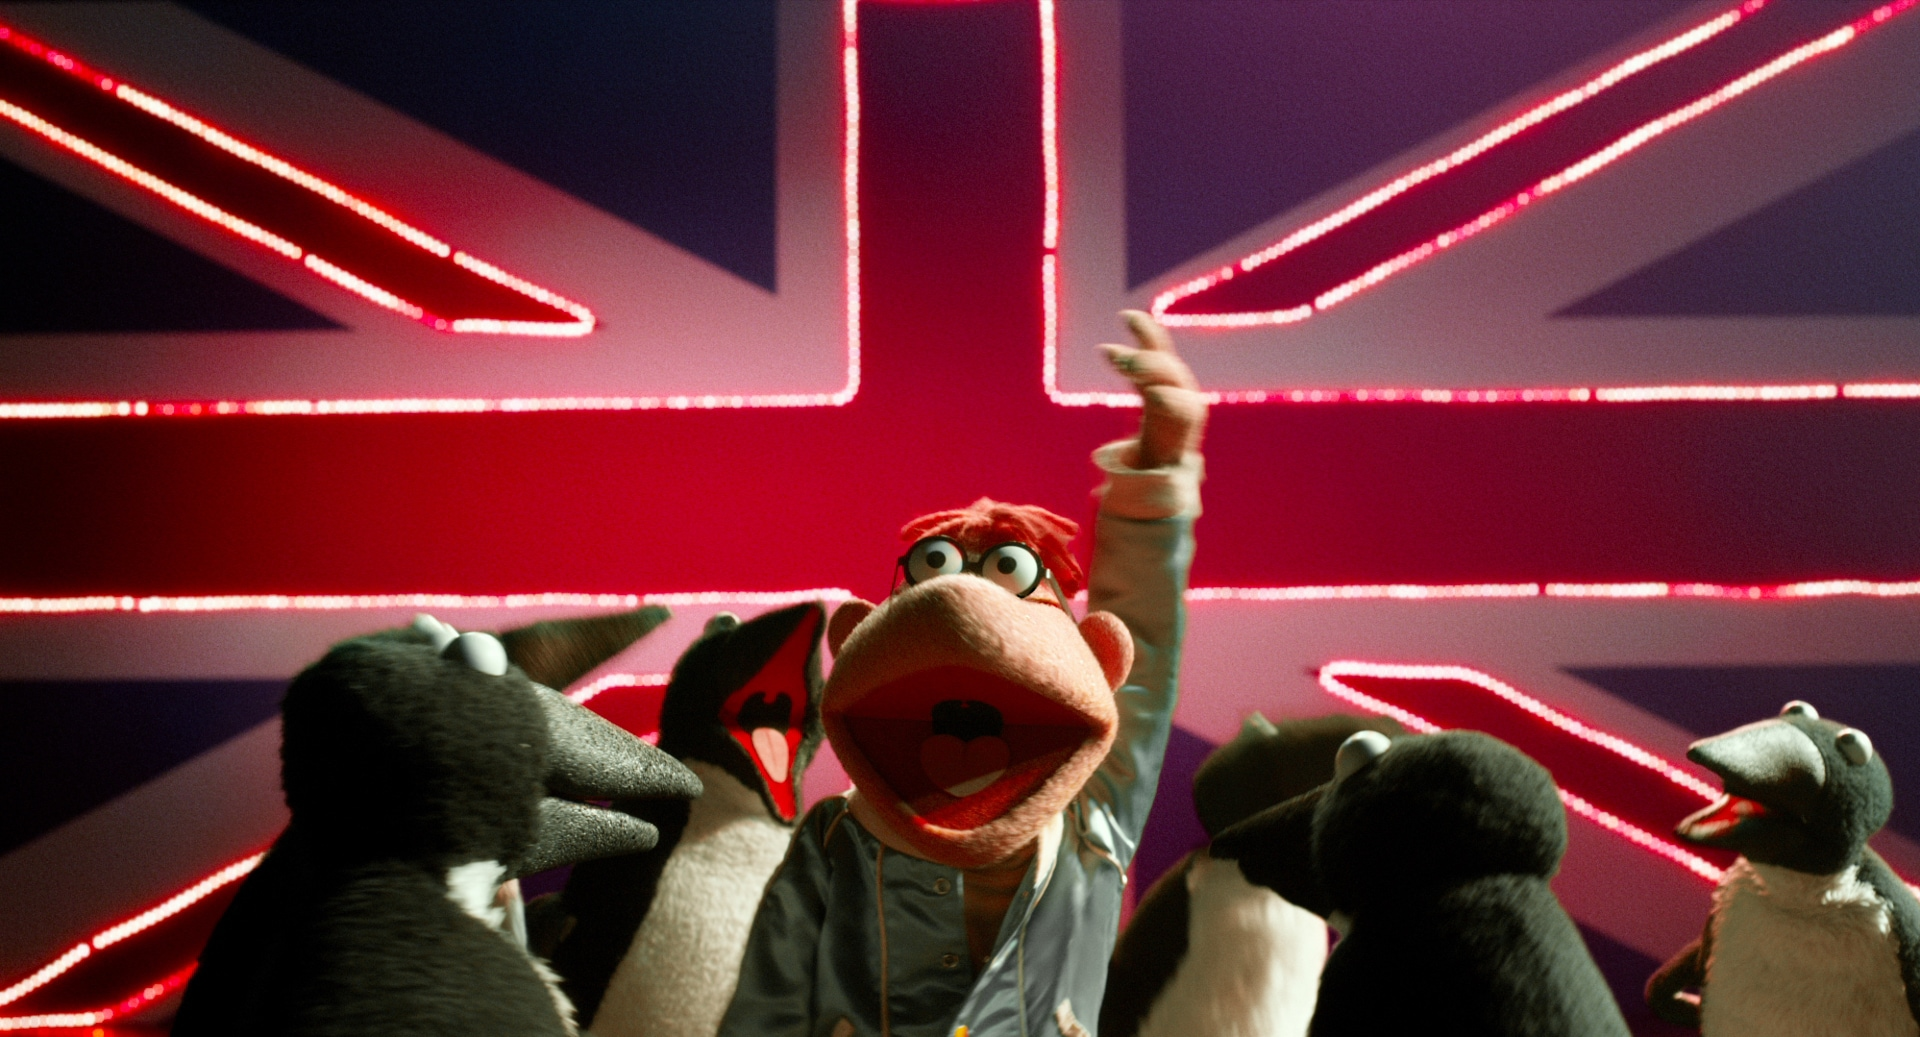 The muppets have fun wherever they are.